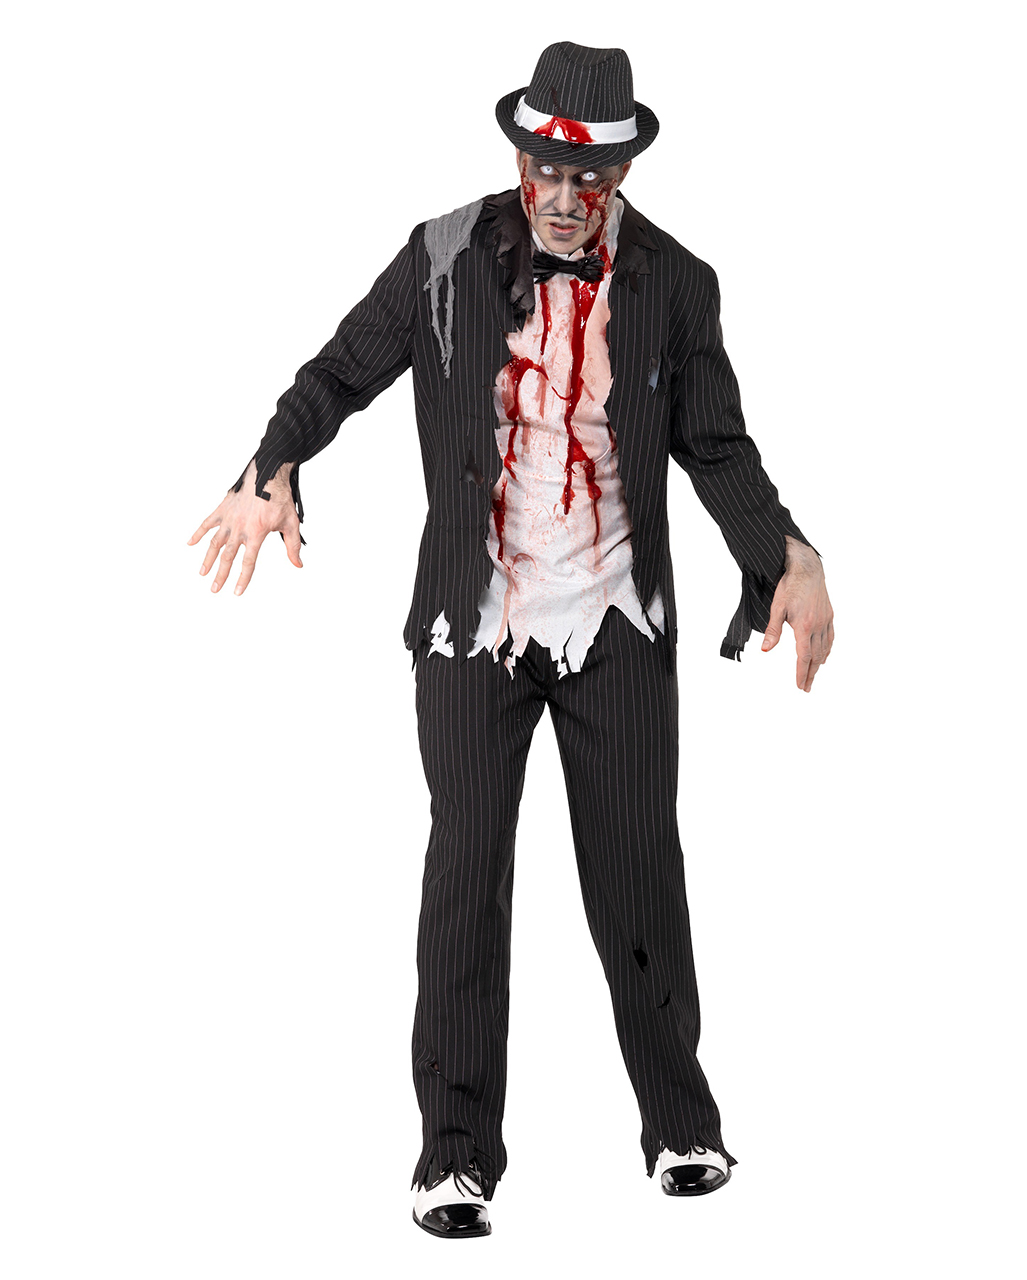 zombie mafiosi costume creepy mobster outfit horror. Black Bedroom Furniture Sets. Home Design Ideas